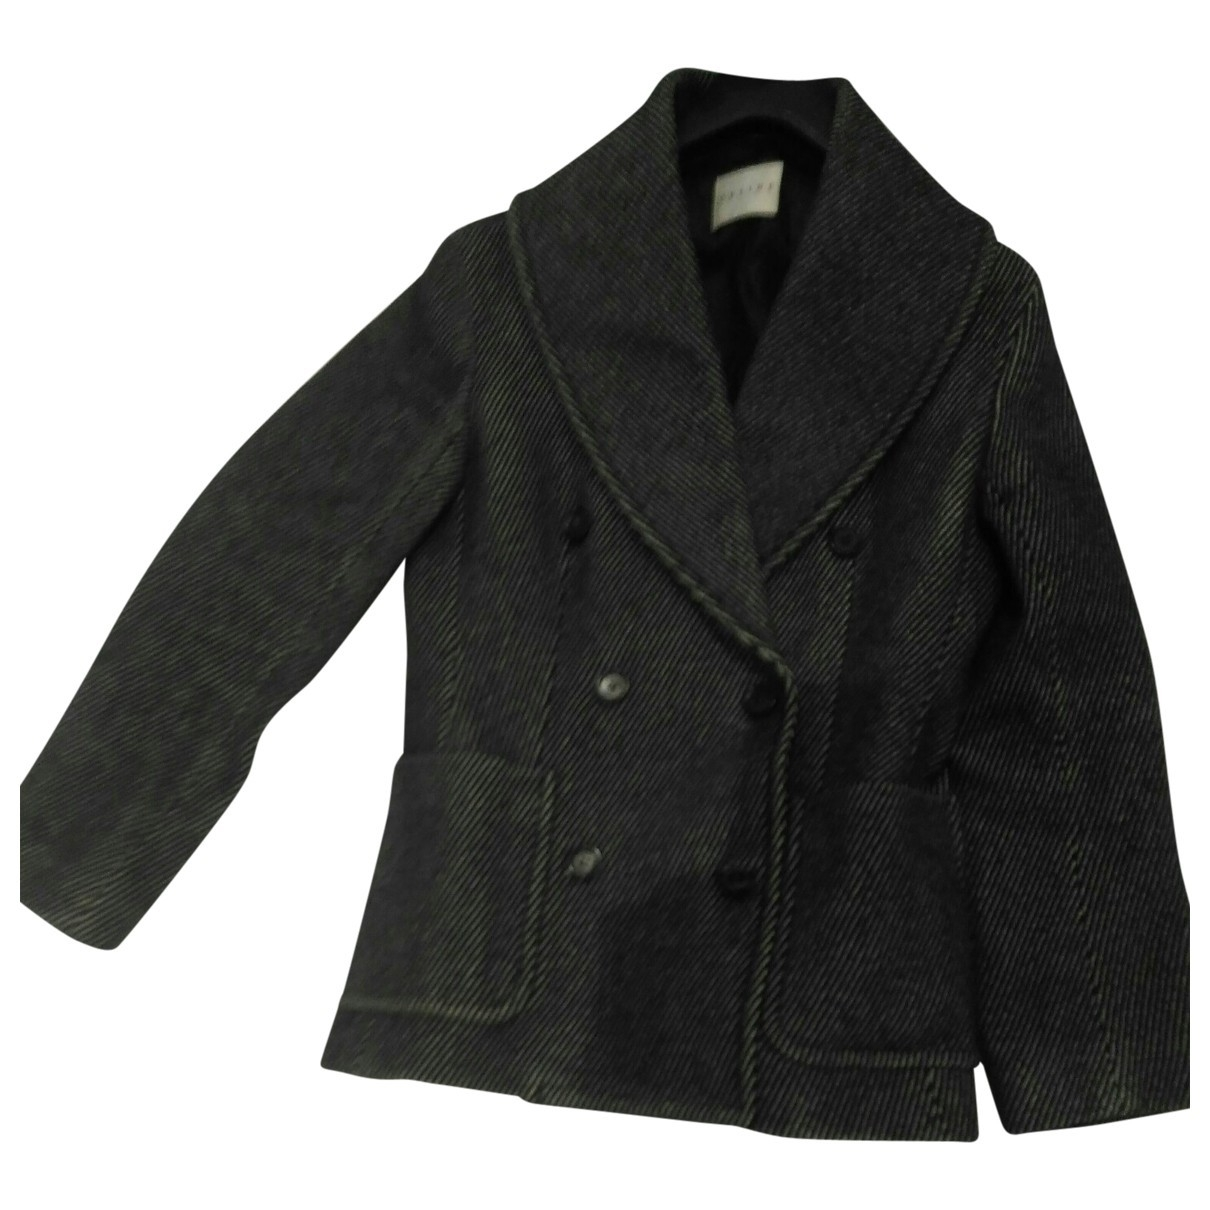 Celine \N Black Wool jacket for Women 38 FR